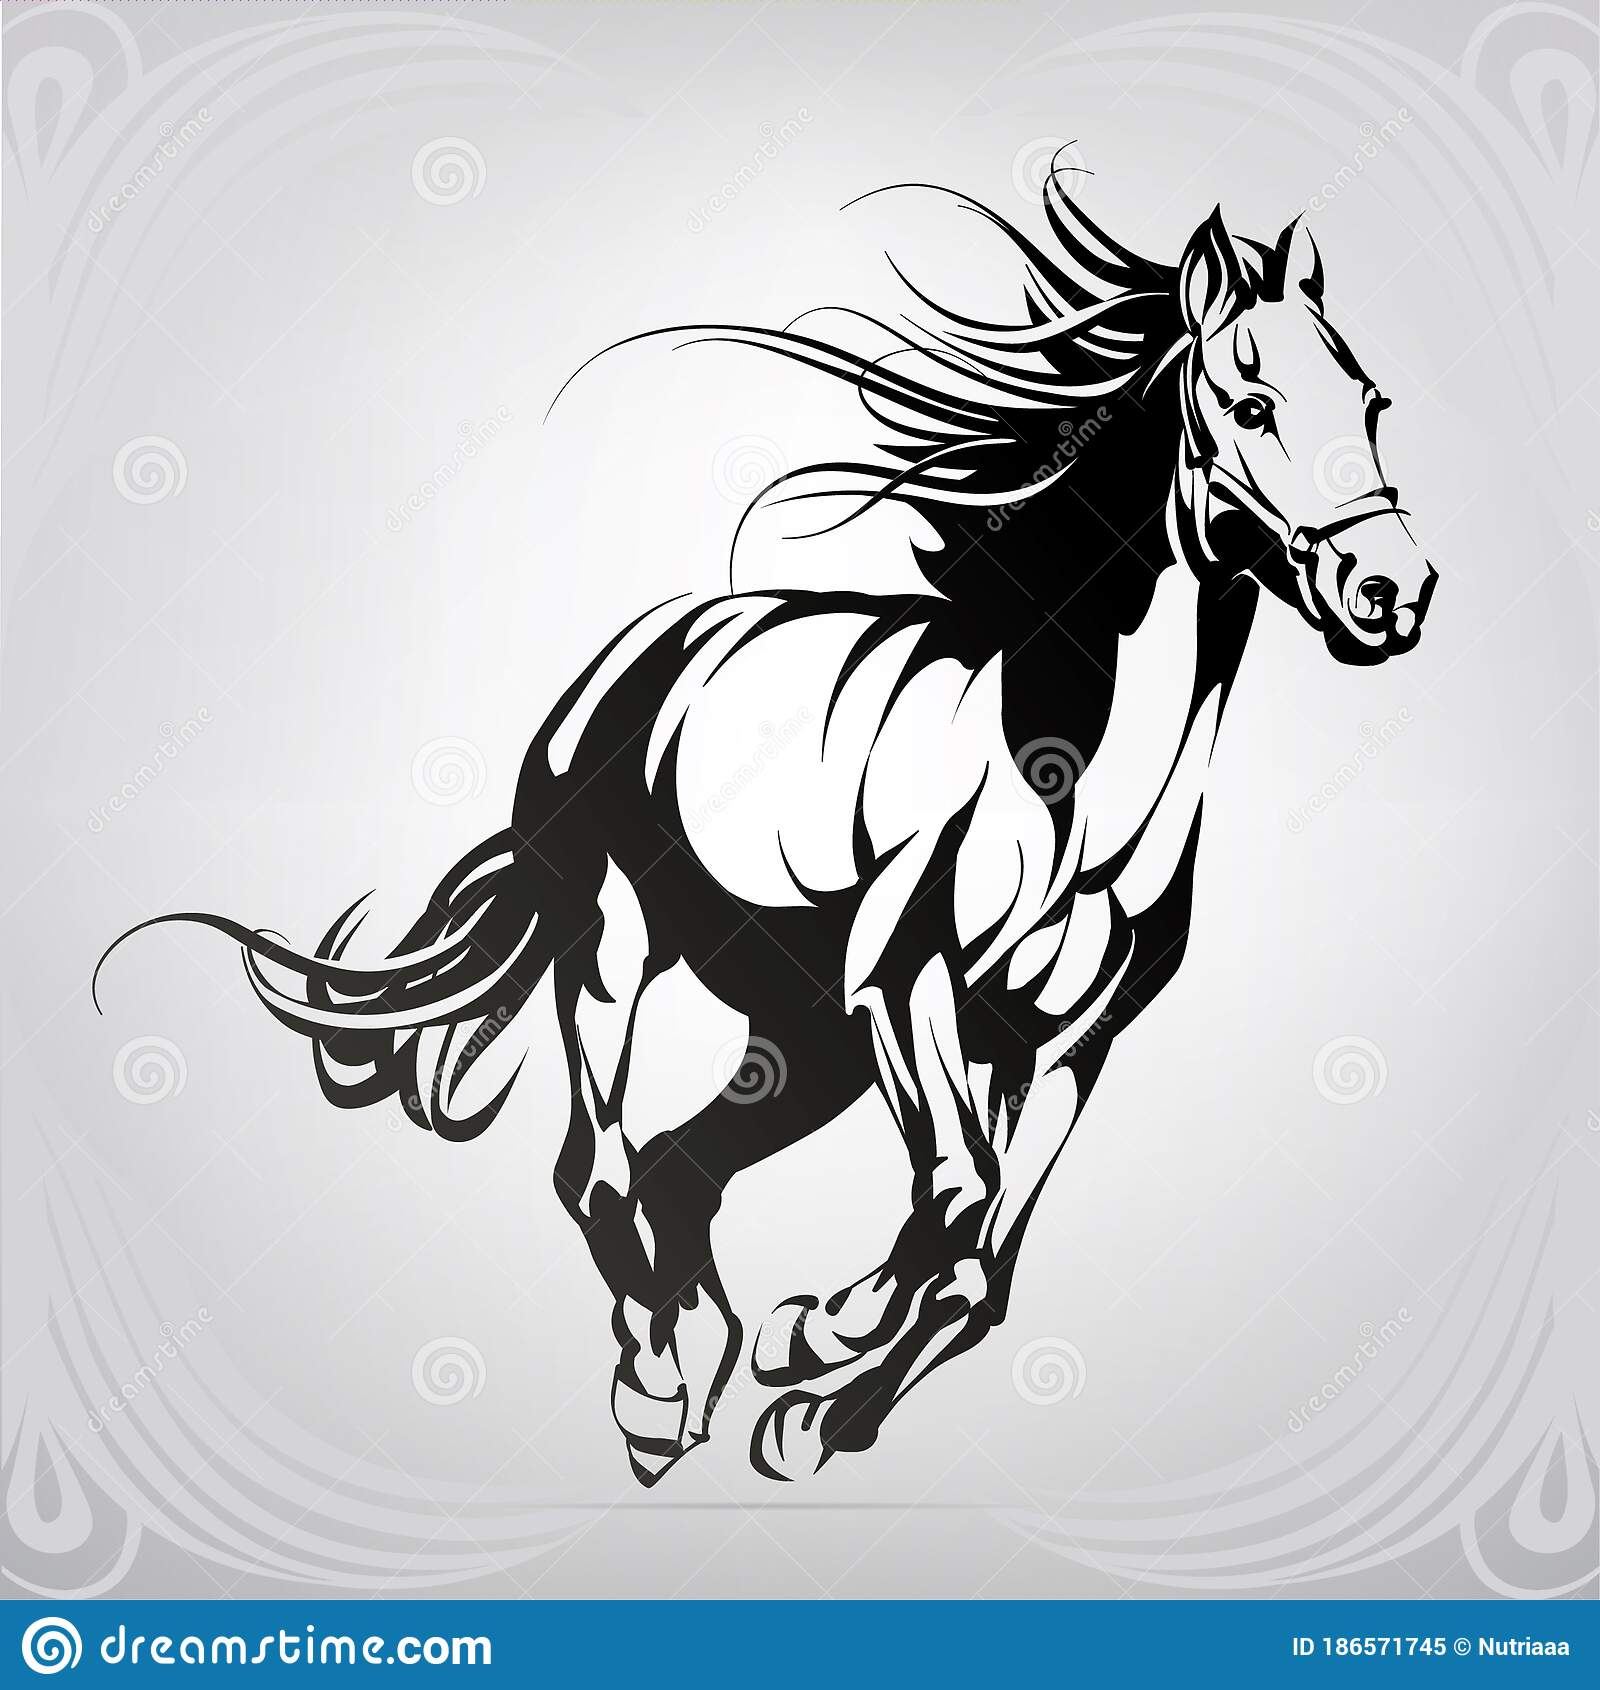 Silhouette Of The Running Horse Vector Illustration Stock Vector Illustration Of Head Sketch 186571745